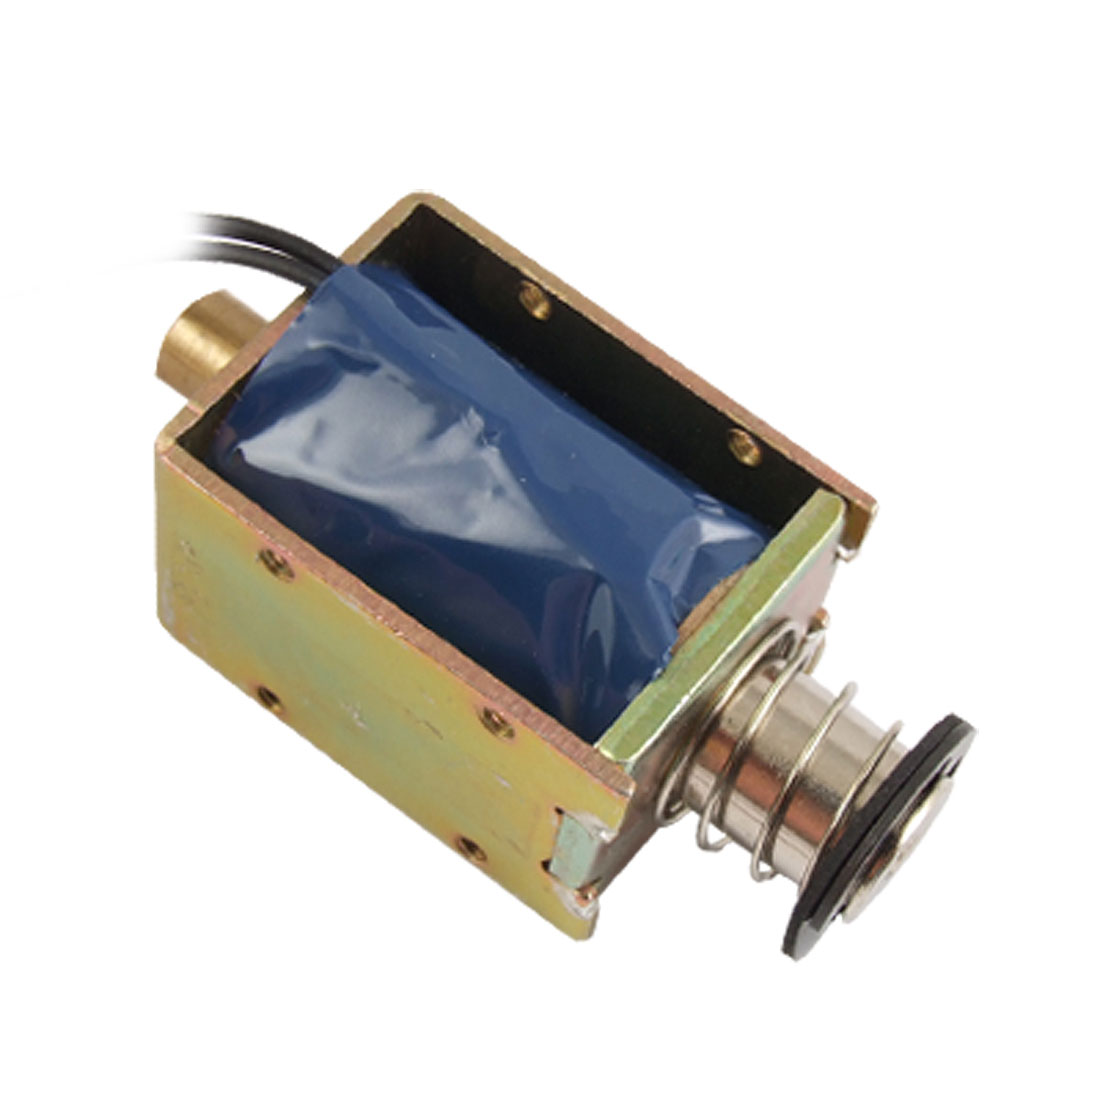 DC 24V 4.5W 0.34A Push Type Open Frame Linear Motion Solenoid